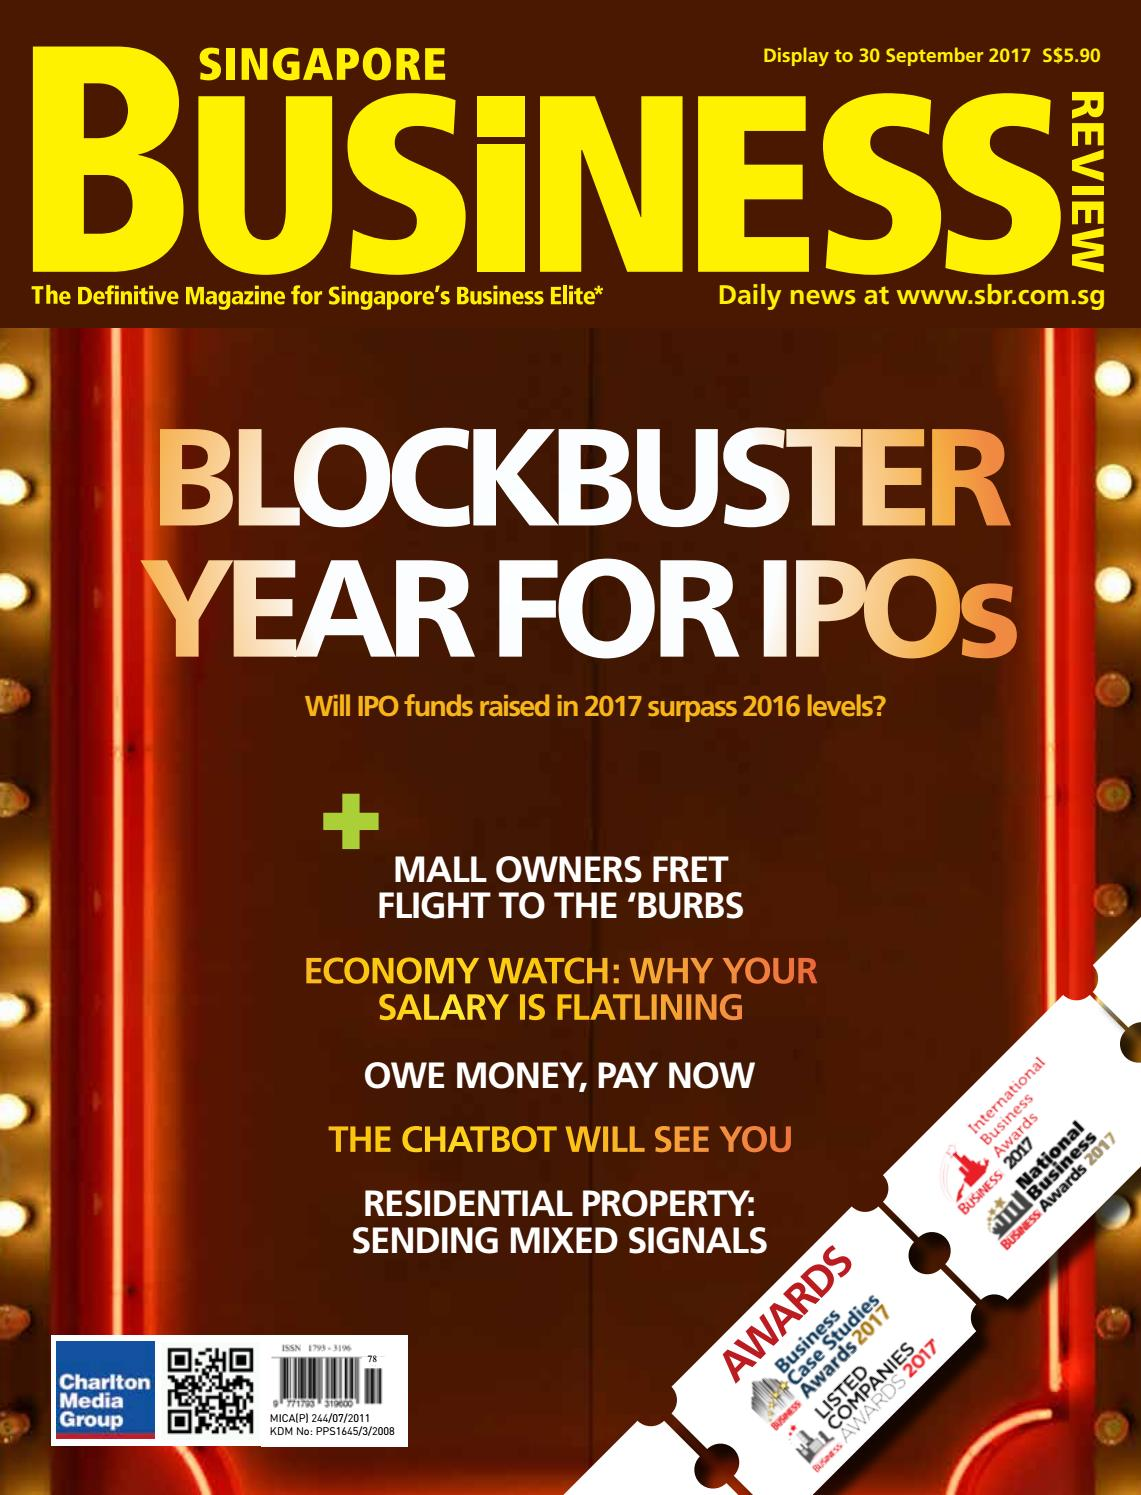 27caf6235afa Singapore Business Review (August - September 2017) by Charlton Media Group  - issuu